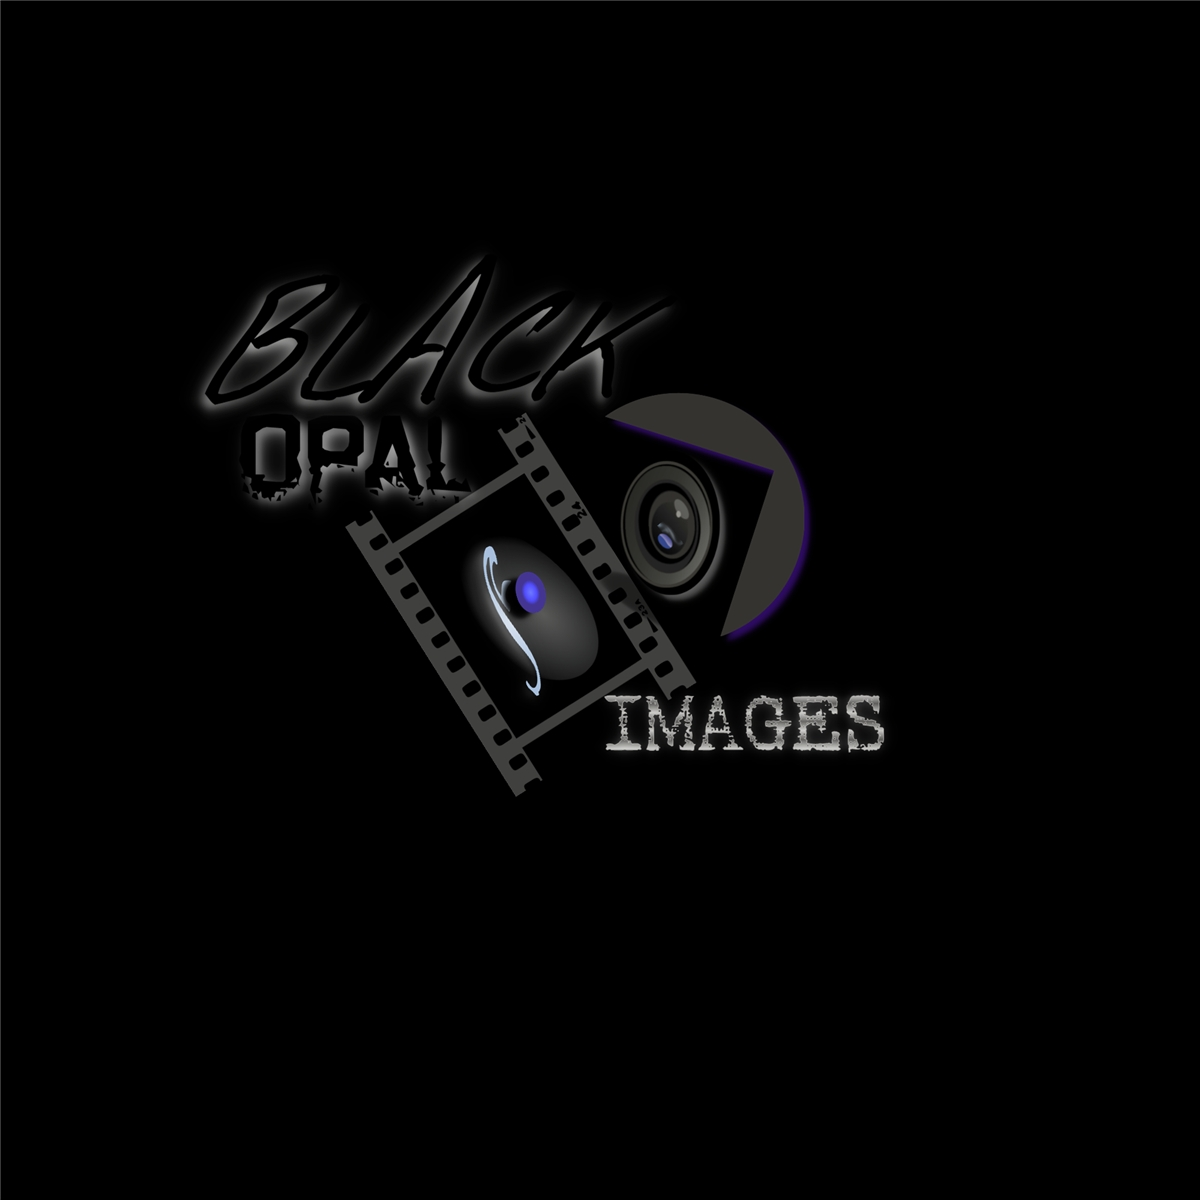 Logo Design by Chris Frederickson - Entry No. 8 in the Logo Design Contest New Logo Design for Black Opal Images.